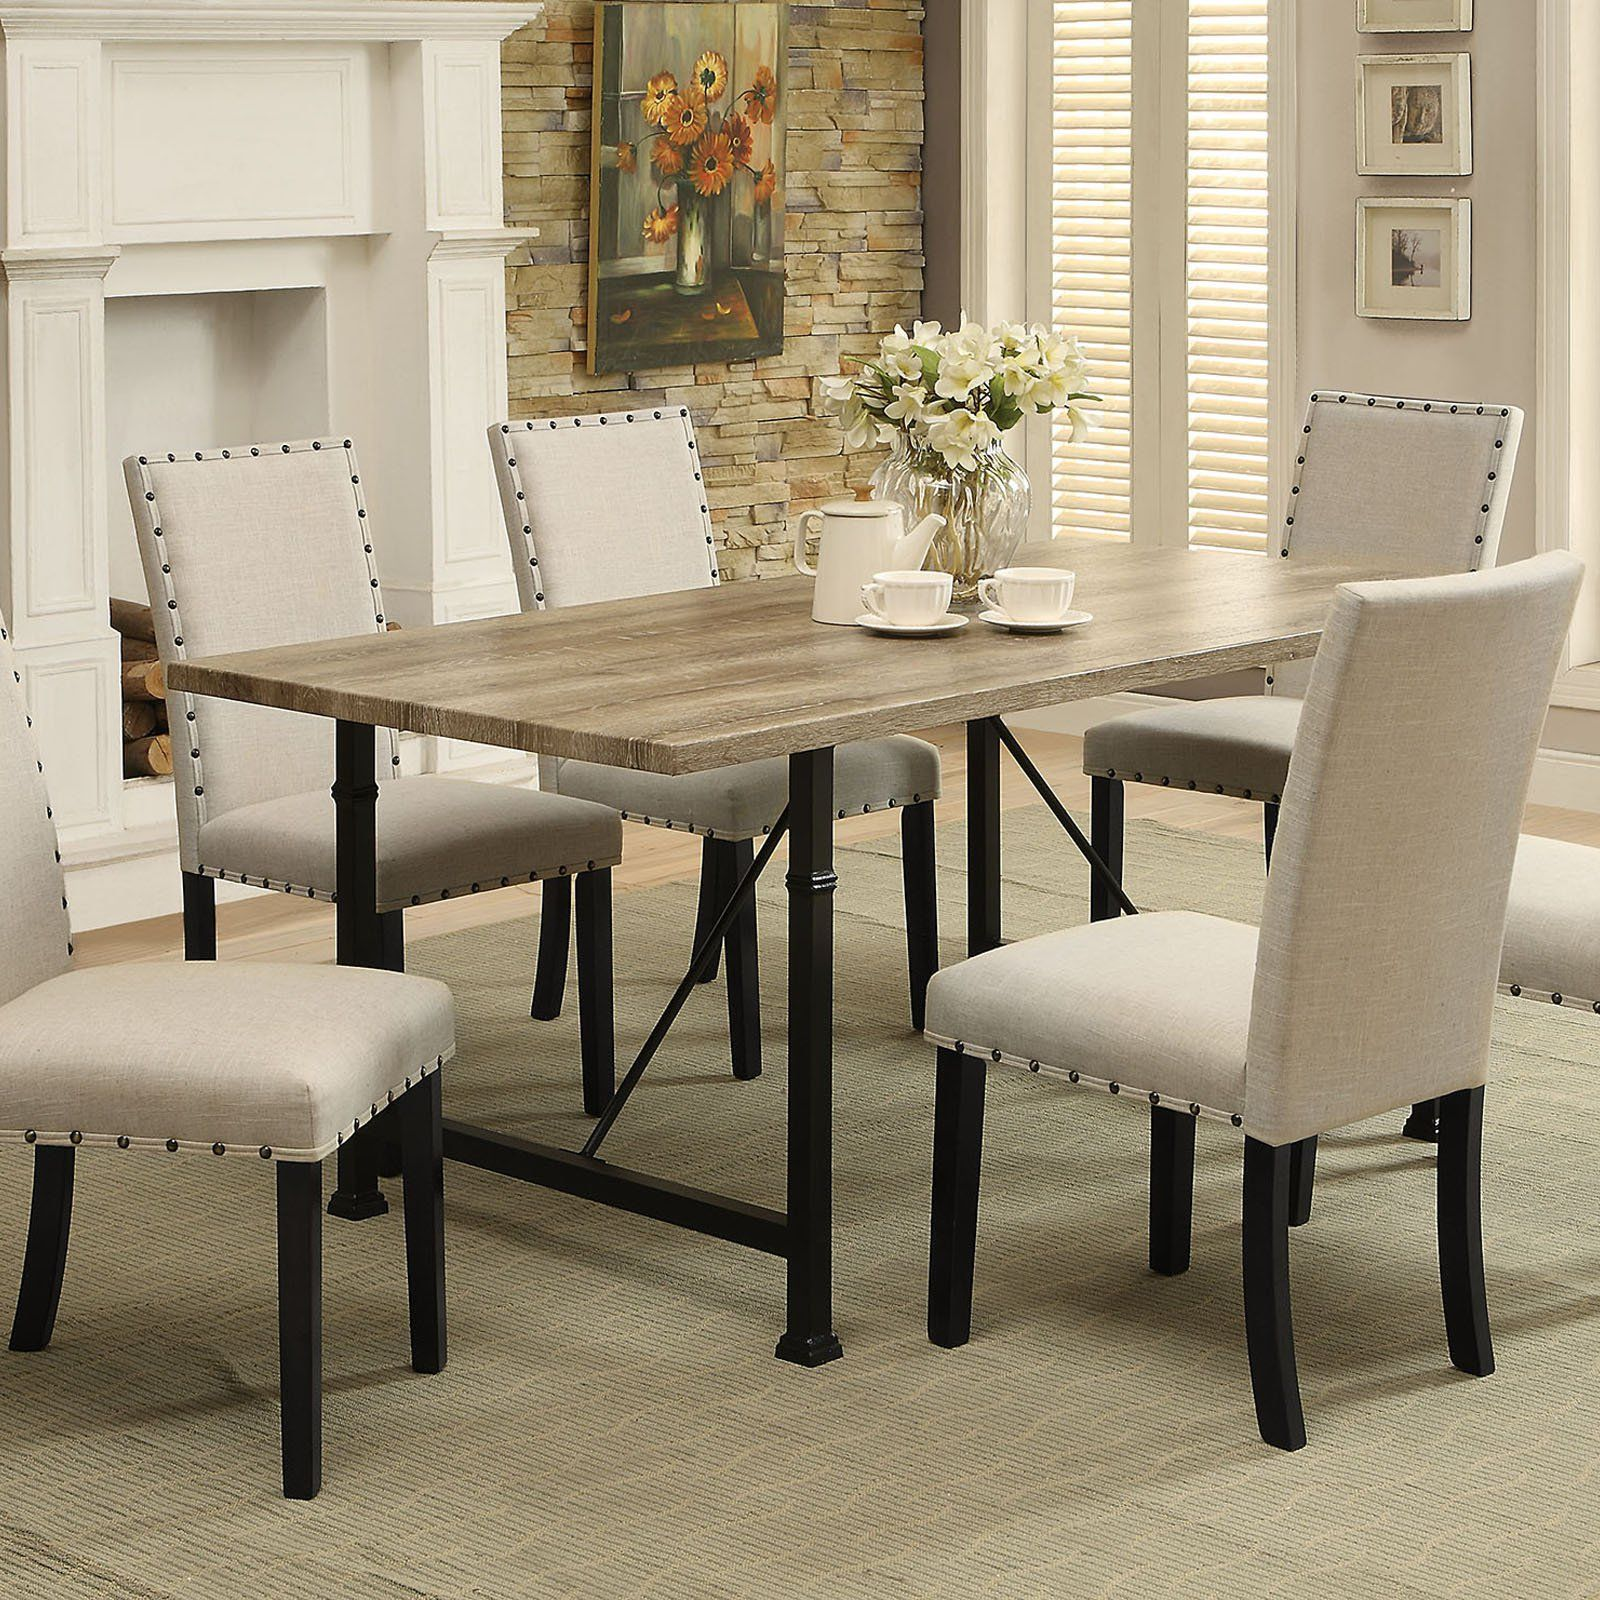 Acme Furniture Old Lake Dining Table